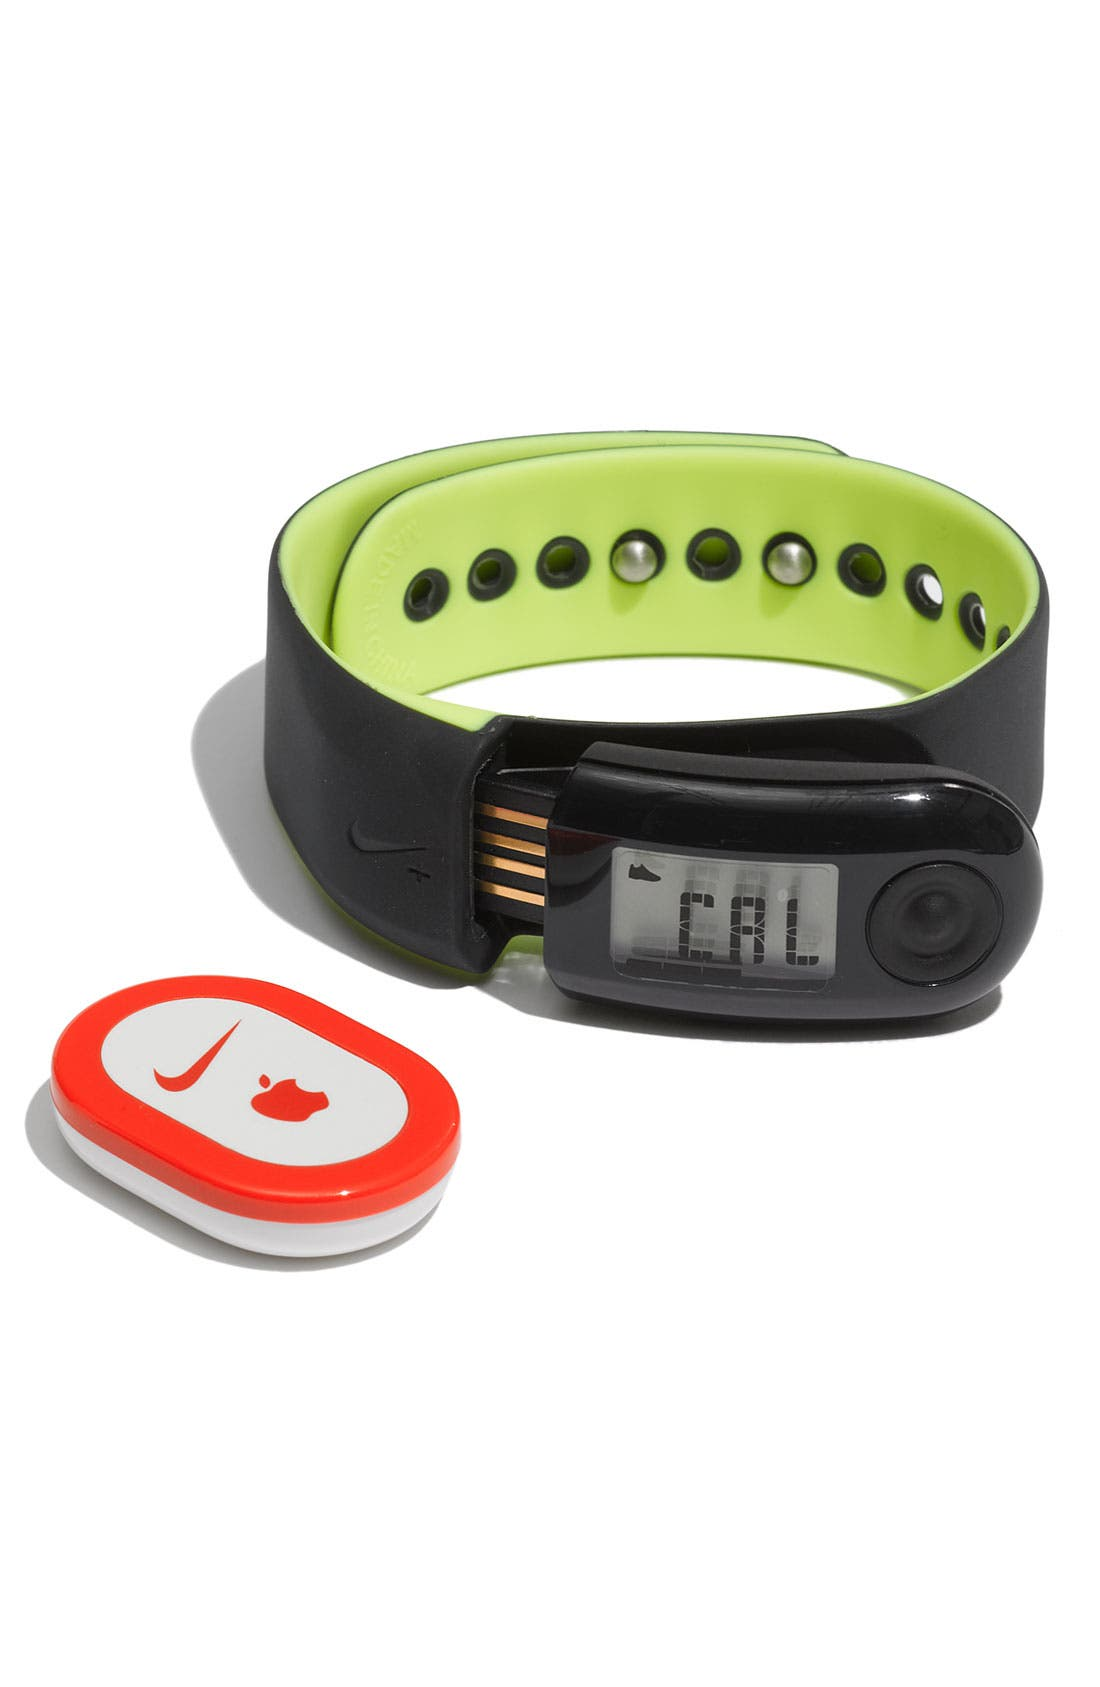 Main Image - Nike+ Sport Band 2